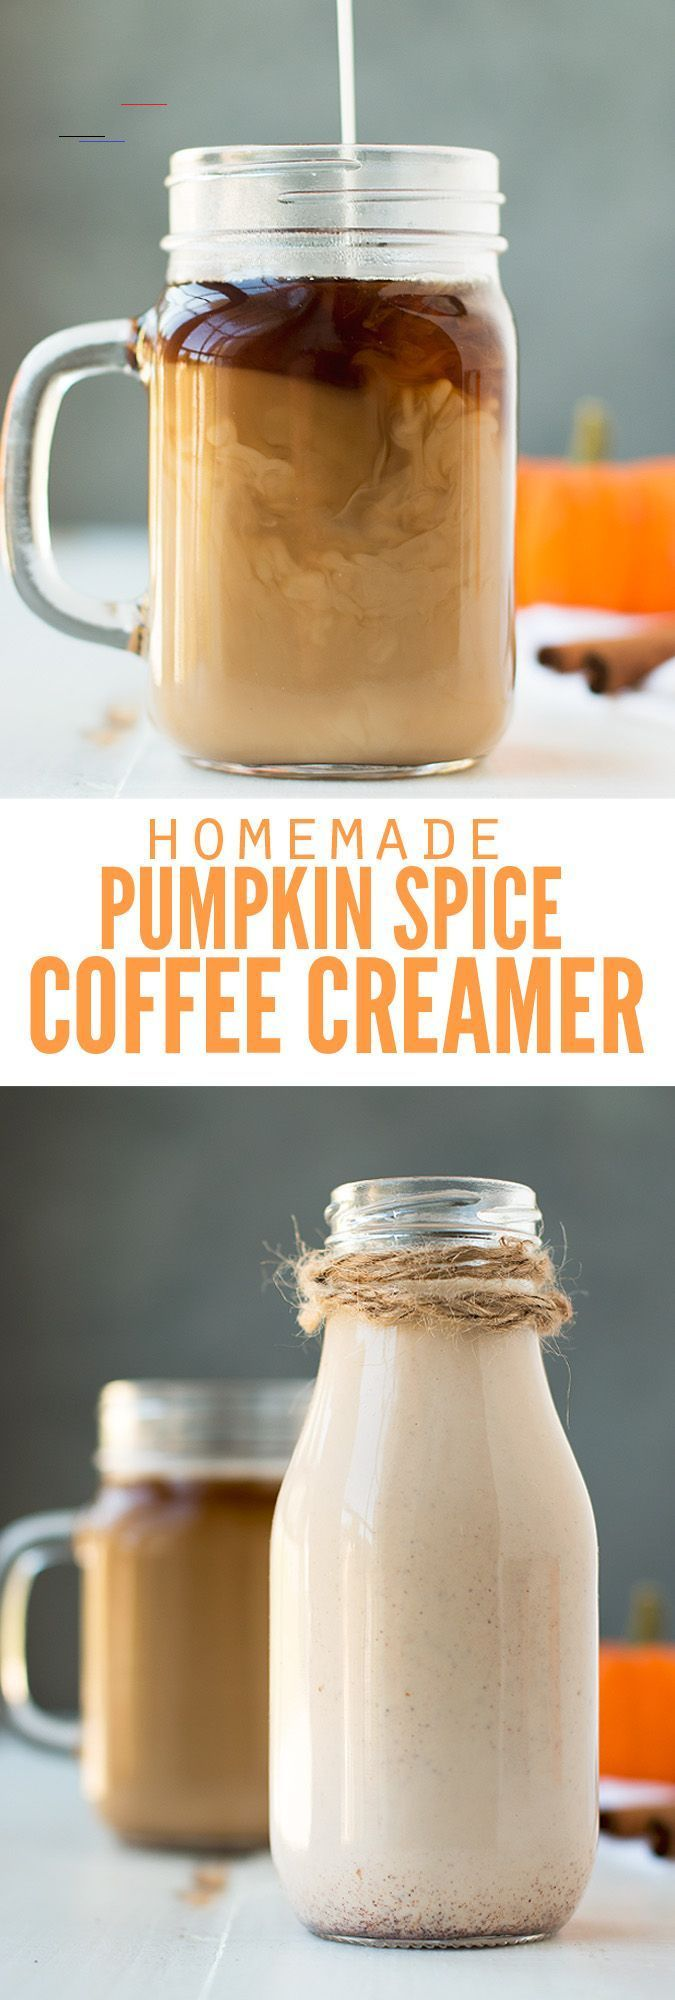 Homemade Pumpkin Spice Creamer (CoffeeMate Copycat Recipe